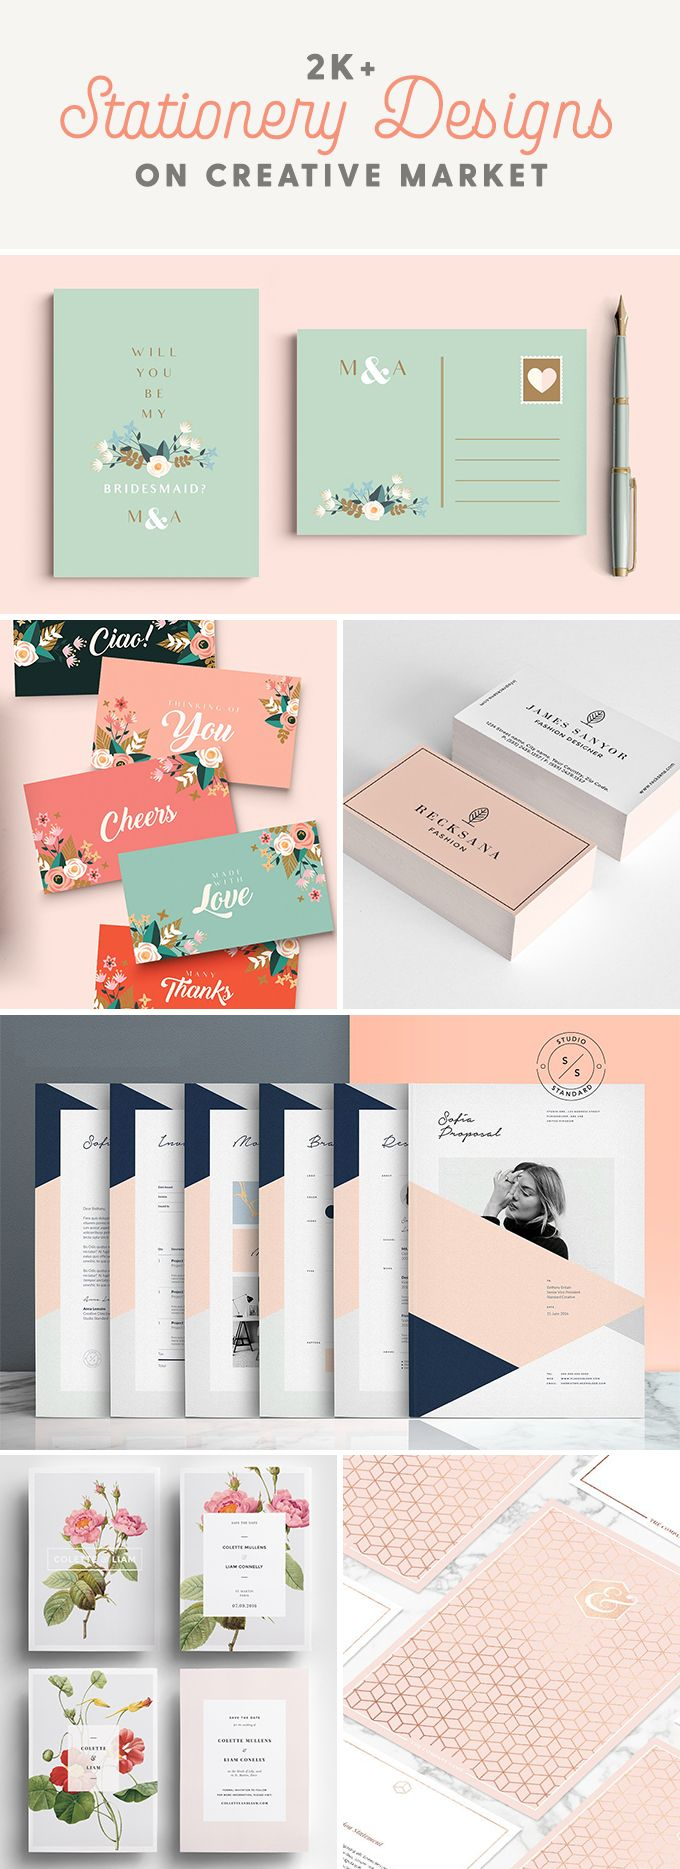 Discover more than stationery templates for business